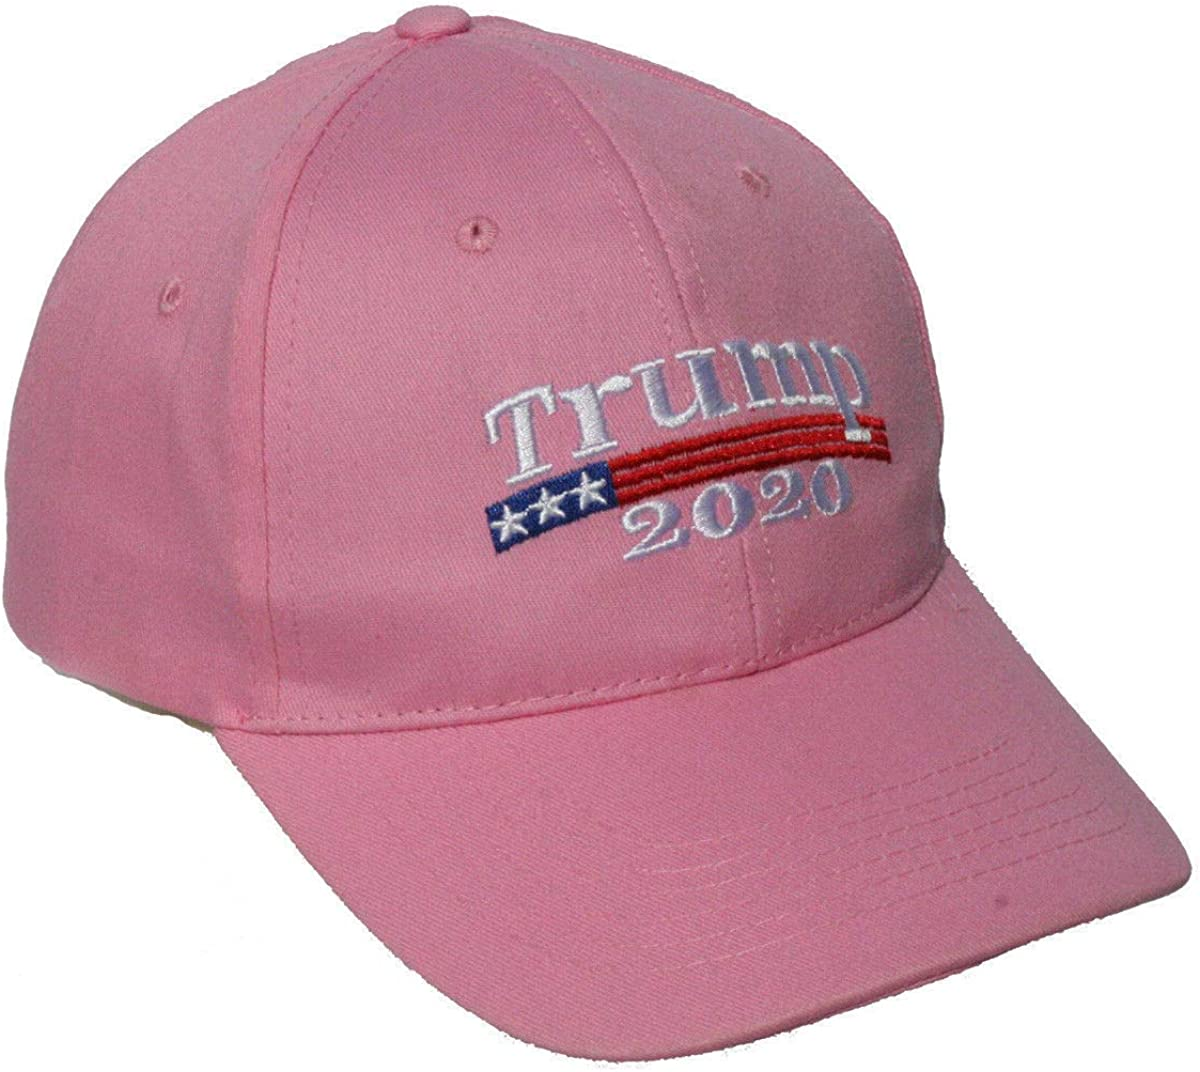 NEW Pink Embroidered MAGA TRUMP 2020 Cap With American Flag